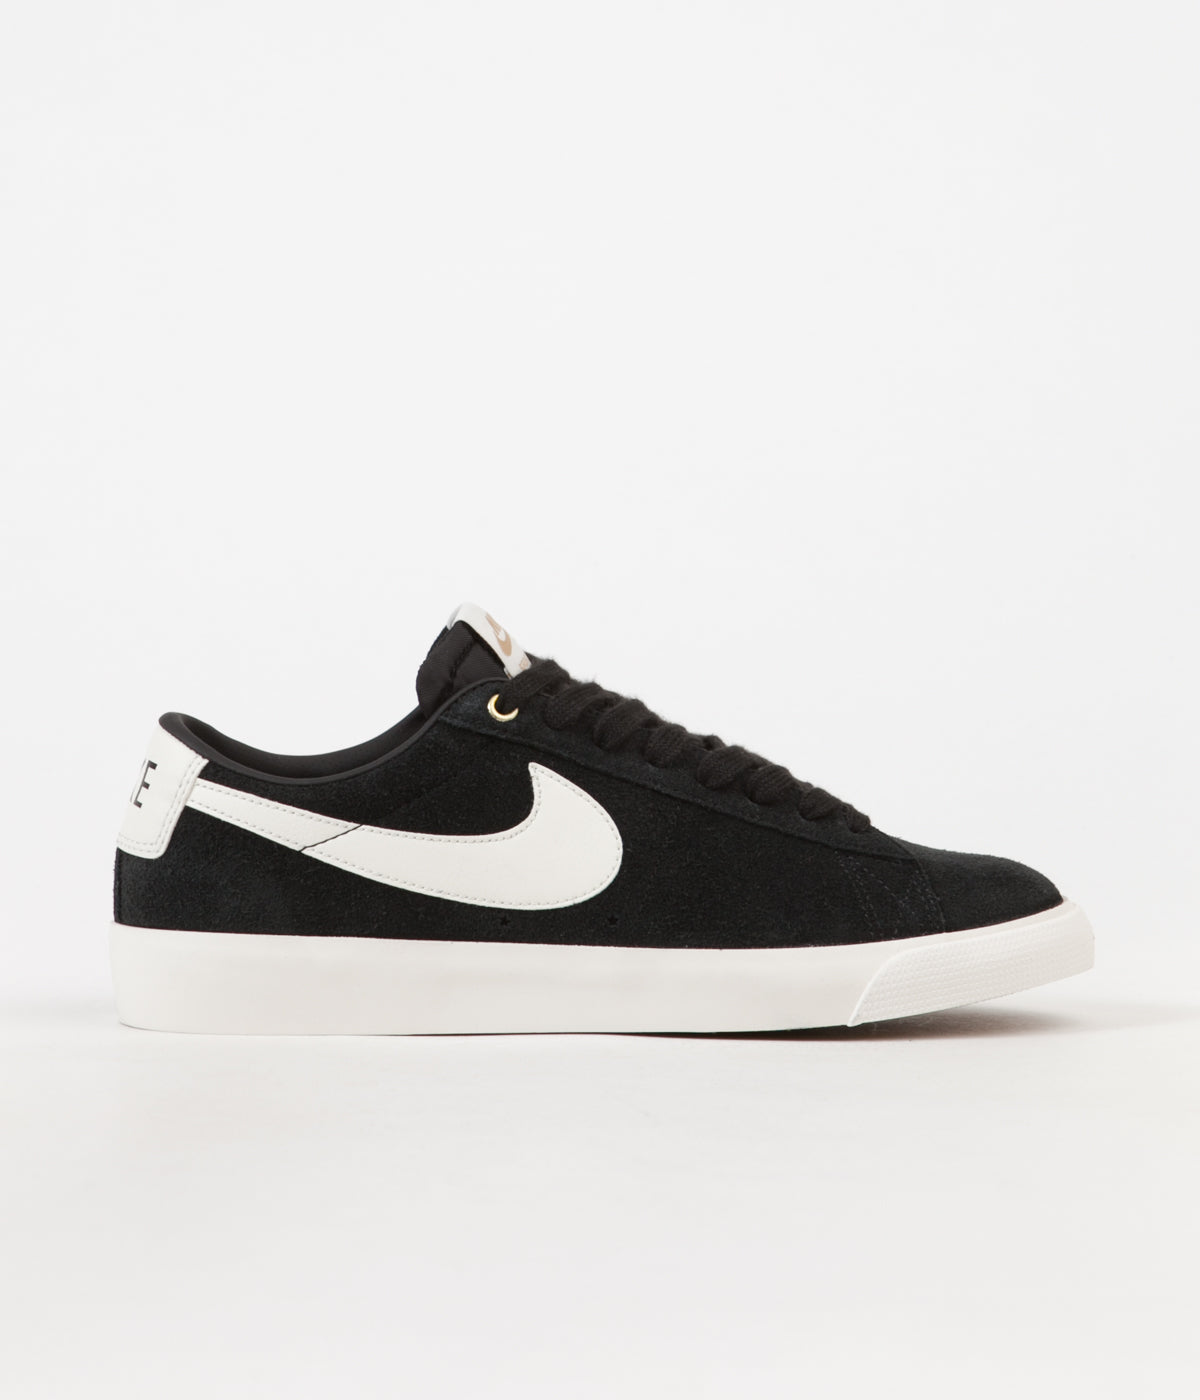 ed17b27adf1f Nike SB Blazer Low GT Shoes - Black   Sail